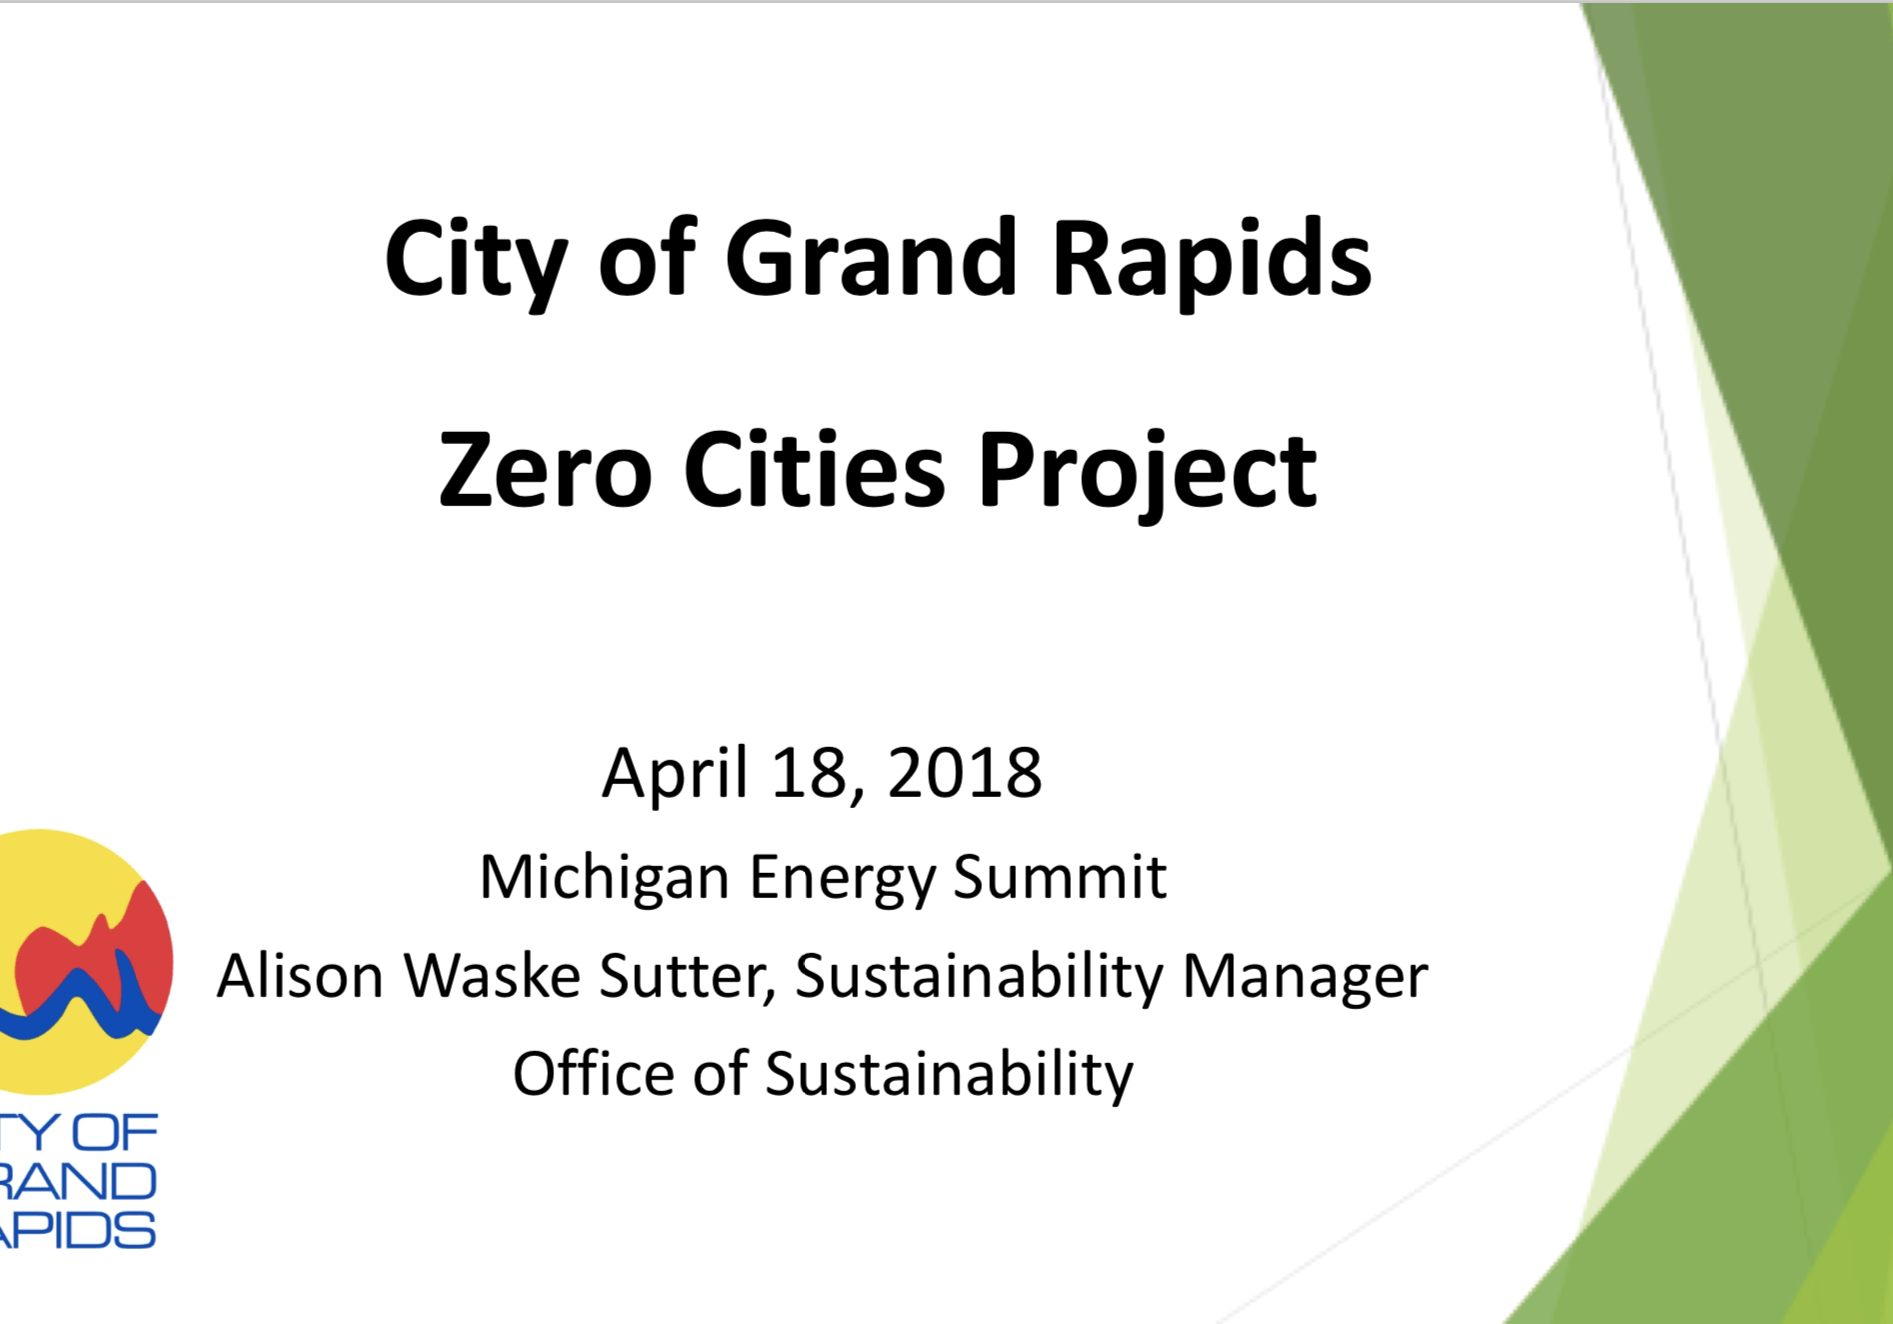 City of Grand Rapids: Zero Cities Project